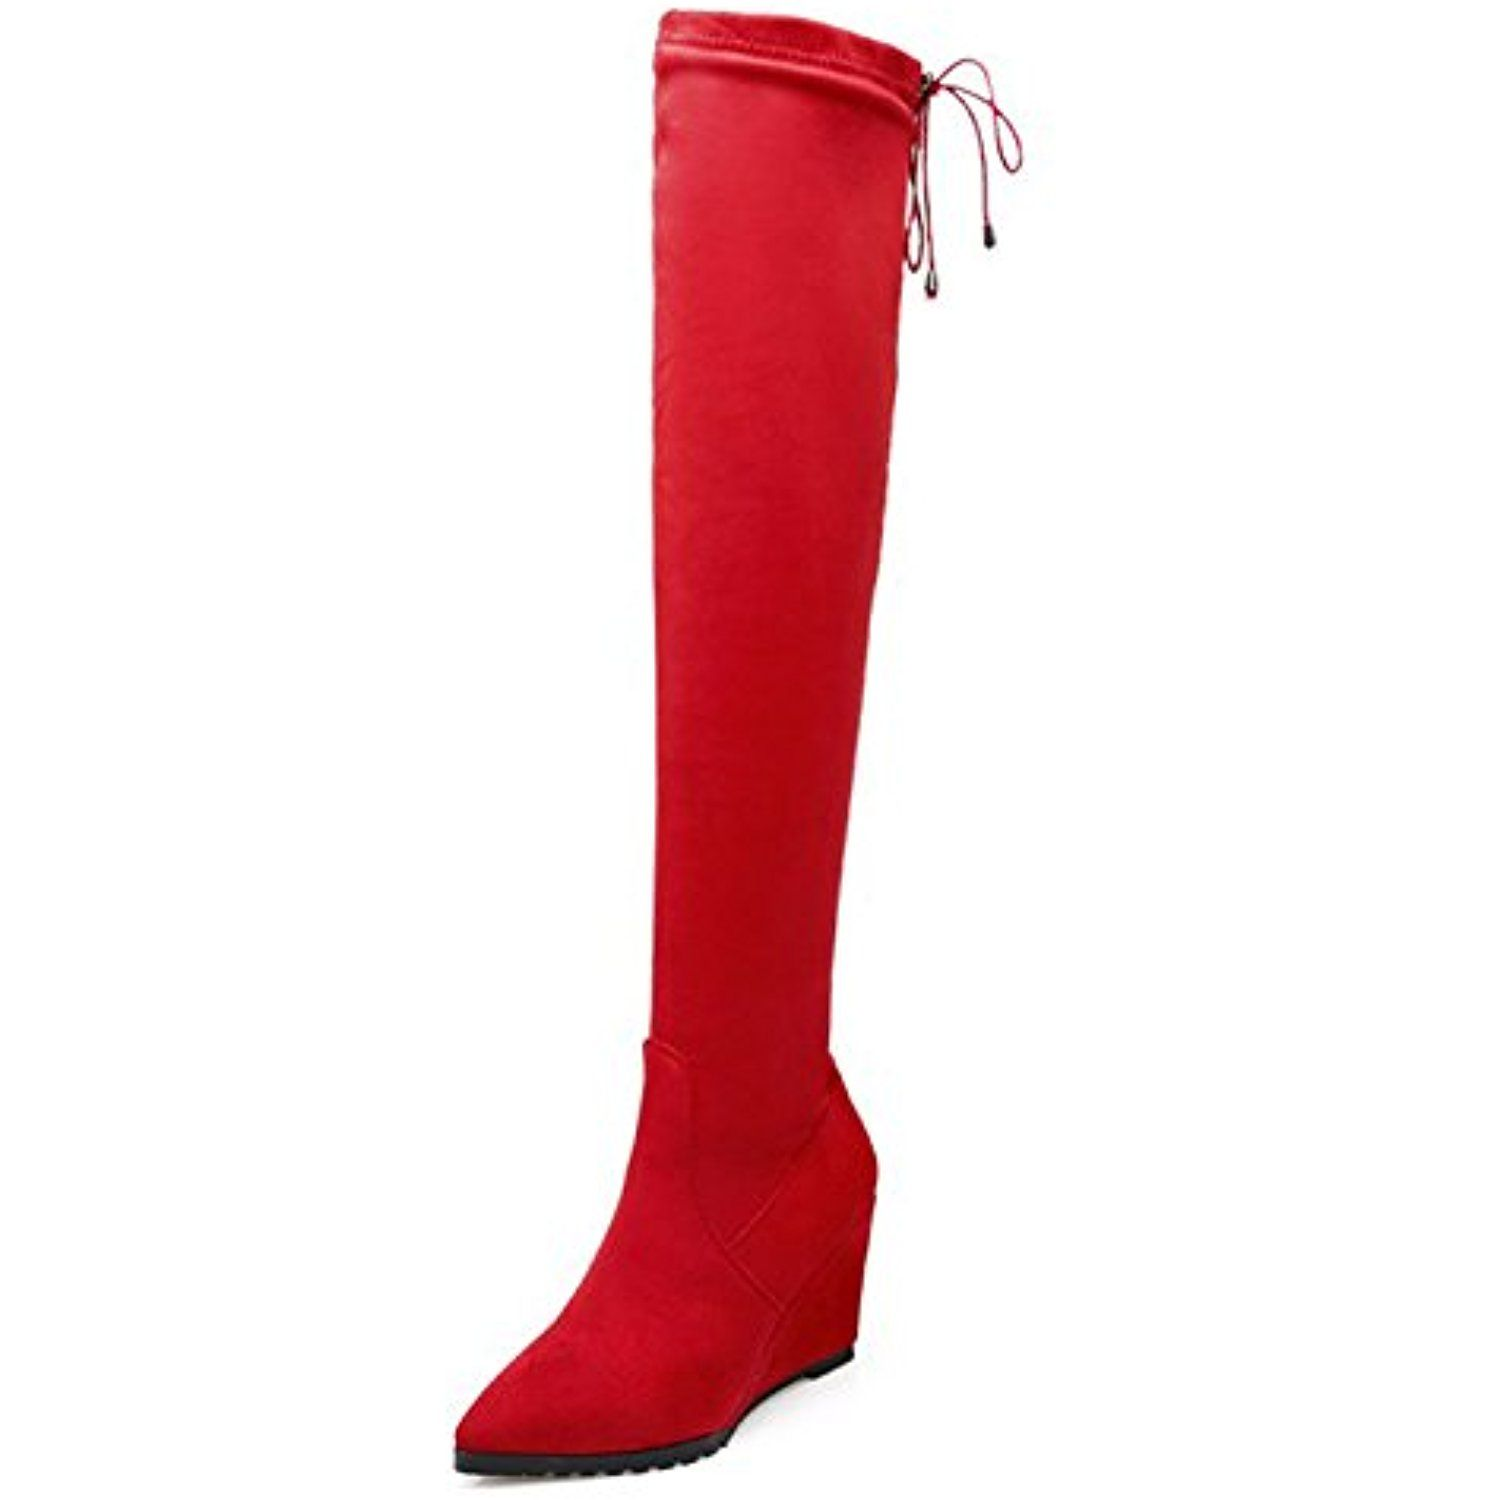 Women's Sexy Pointed Toe Elastic Retractable Back Lace Up Dress Slip On Wedge High Heels Over The Knee High Tall Boots Shoes * You can get additional details at the image link. (This is an affiliate link and I receive a commission for the sales) #OvertheKnee